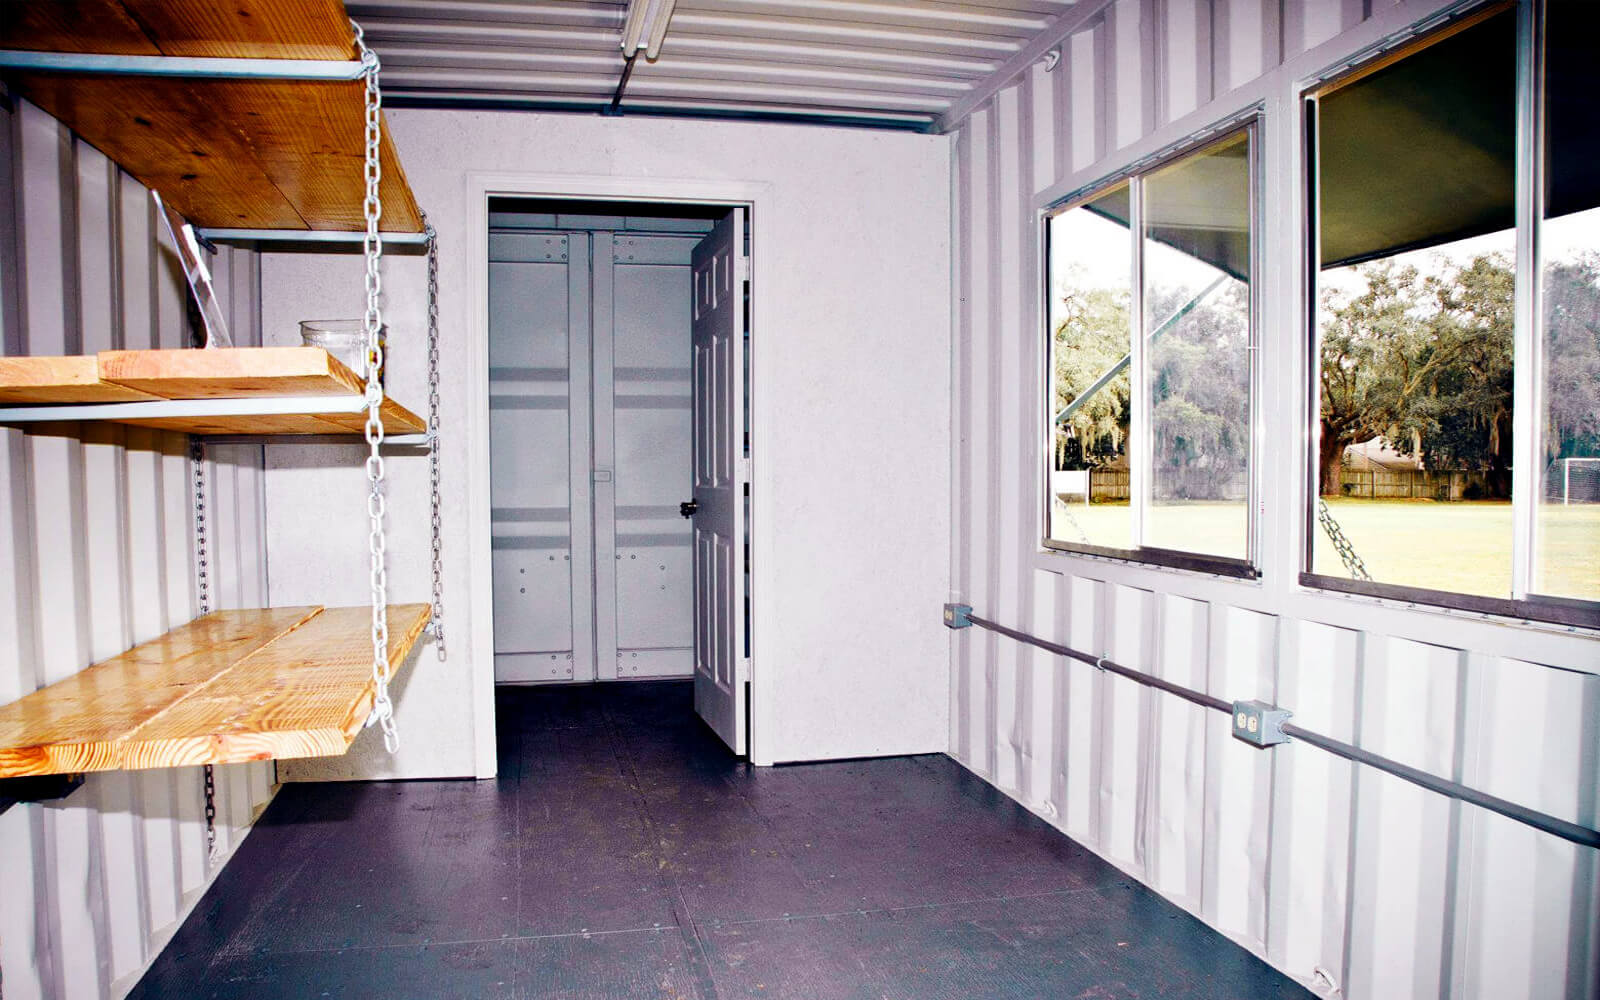 A American Container's Atlas Shelving System